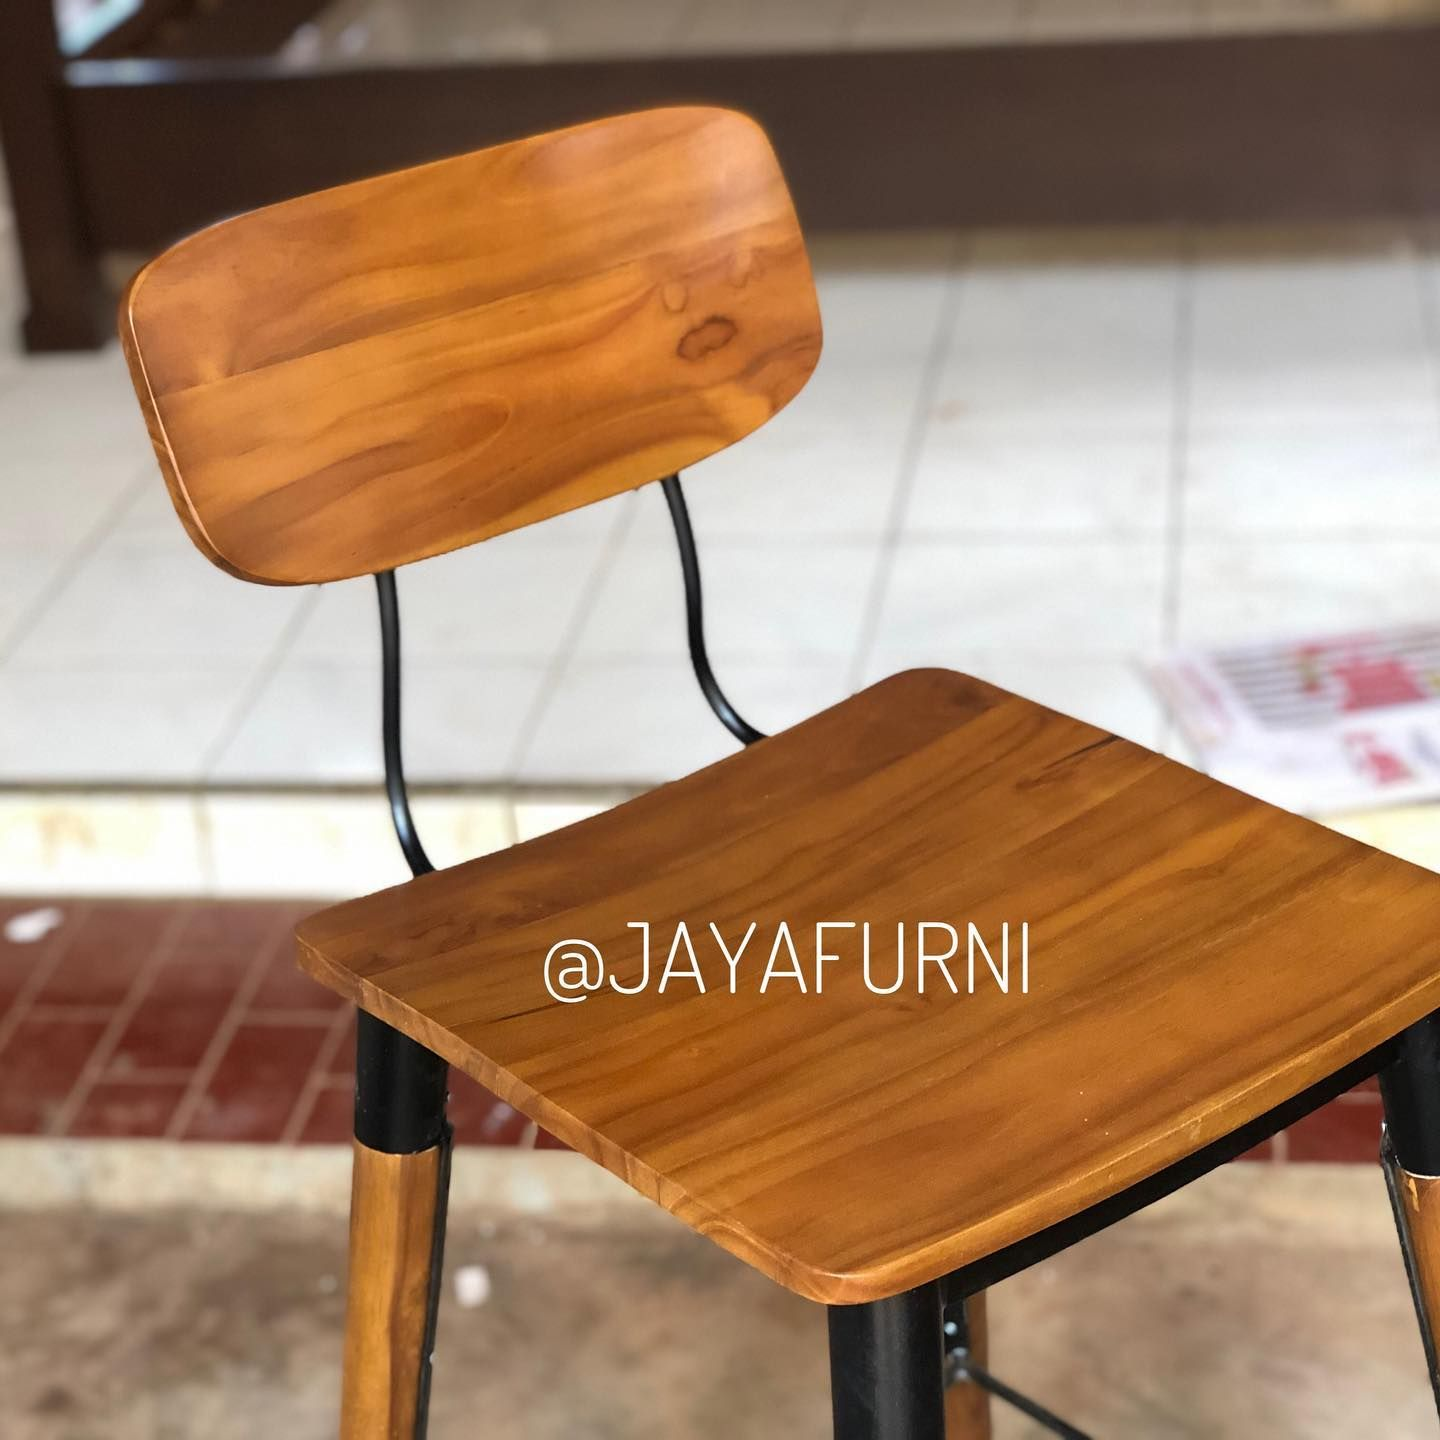 CUSTOM CHAIR  #furnituresale #furniturecafe #marketing #meubelminimalist #furniturebali #scandinavianhome #furnitureretro #teakwood #meubelmurah #furniturebandung #furniturejakarta #furniturevintage #diningtable #furniture #livingroom #jakartafurniture #vintage #homeliving #furnituremurah #instagood #kursicafe #furnituredesign #diningchair #homeinterior #interior #furnitureonline #interiordesignjakarta #sofabedmurah #kursibar #barchair